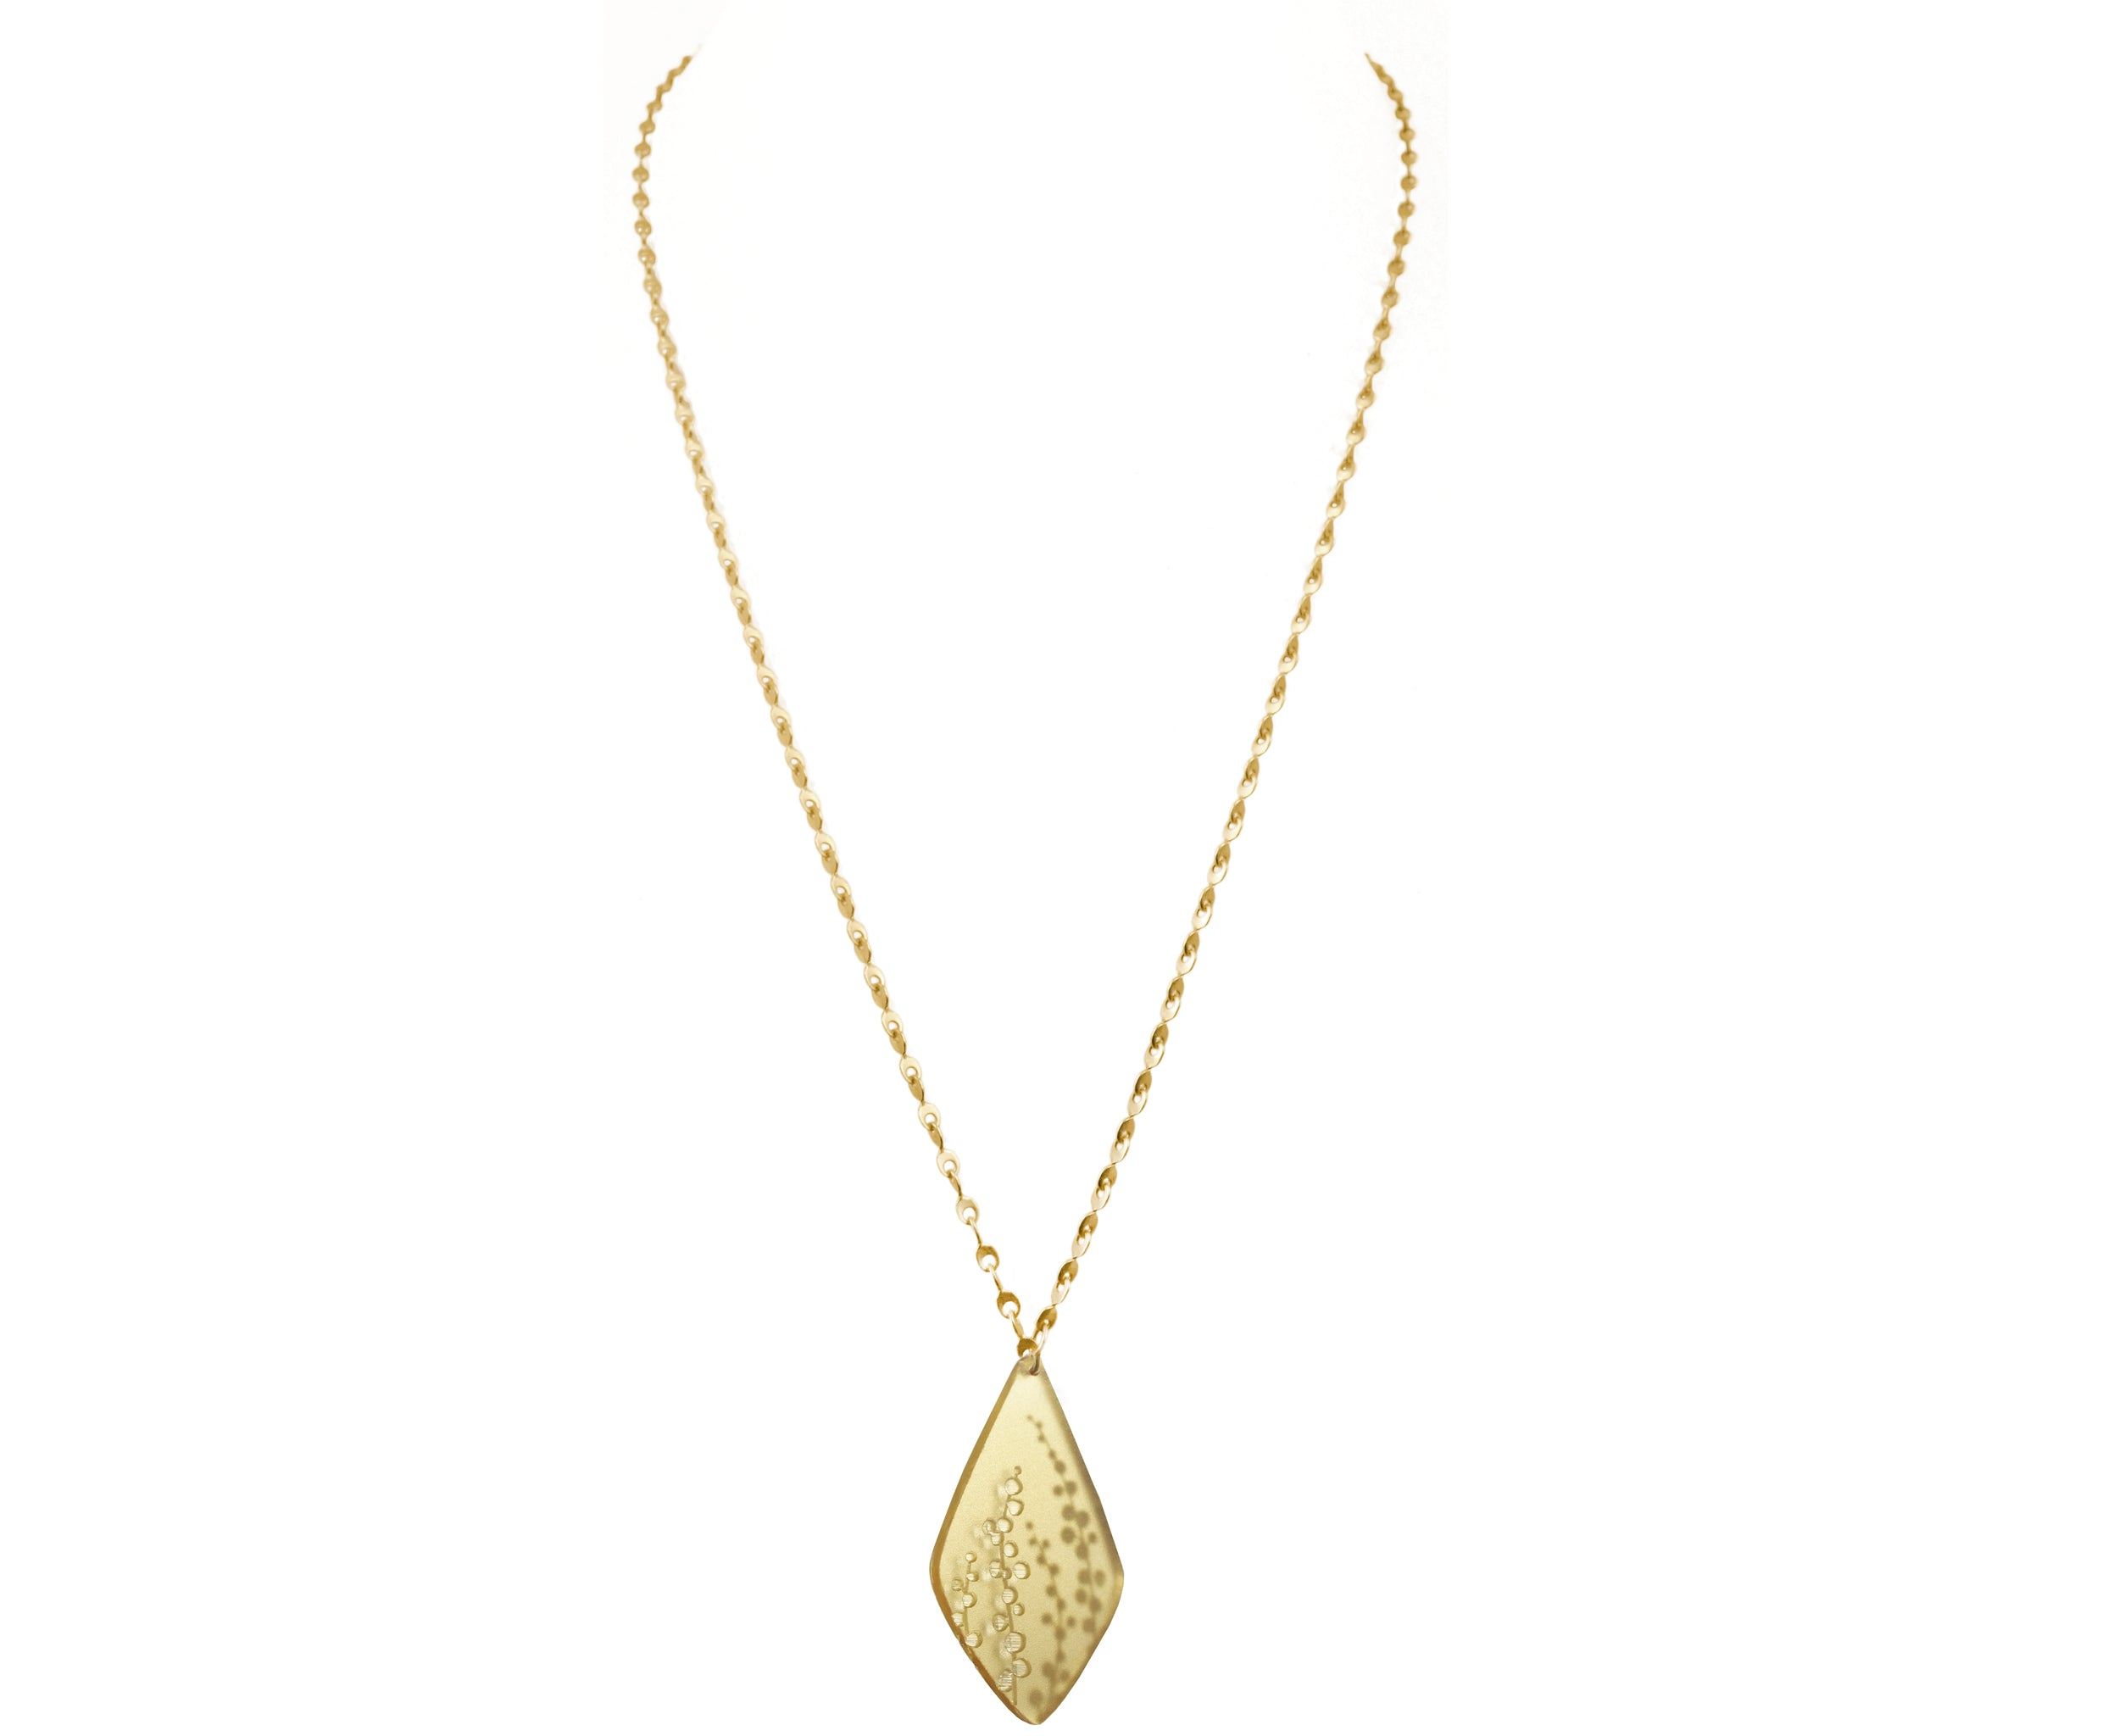 Gold Eyelet Chain Necklace with Etched Sprig Pendant